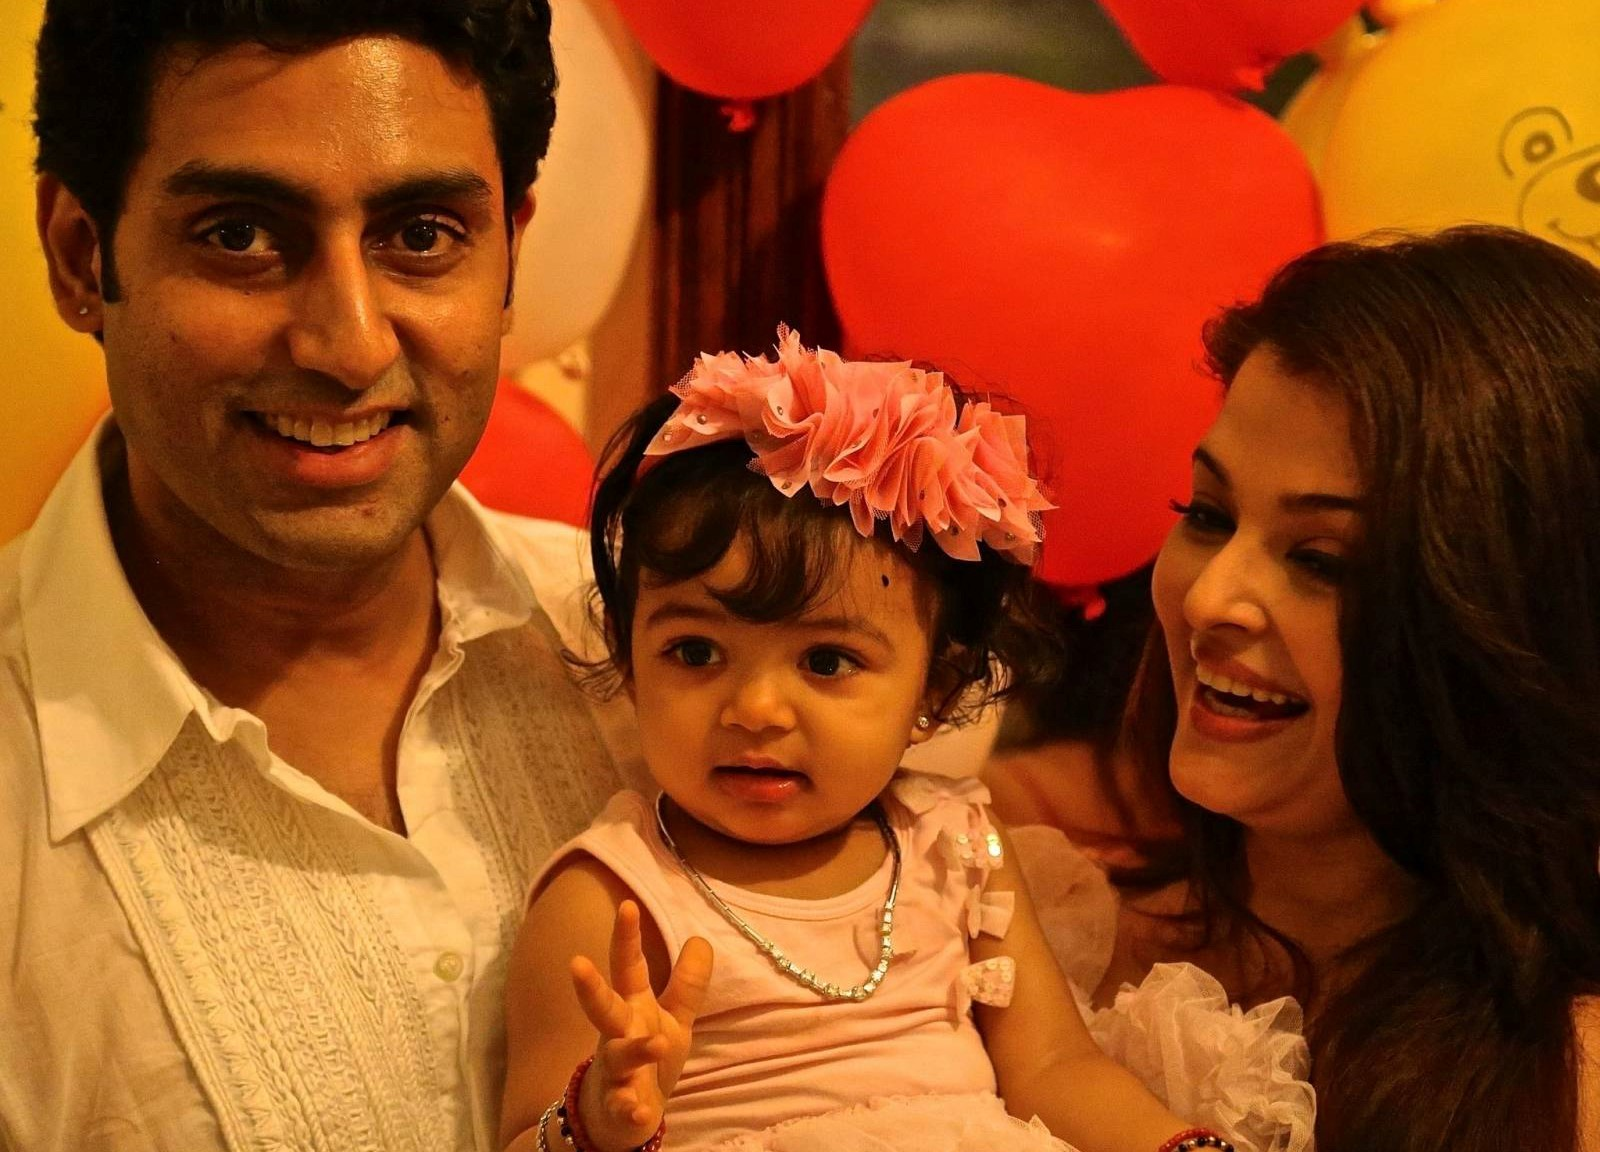 Baby_of_Abhishek_and_Aishwarya_Bachchan